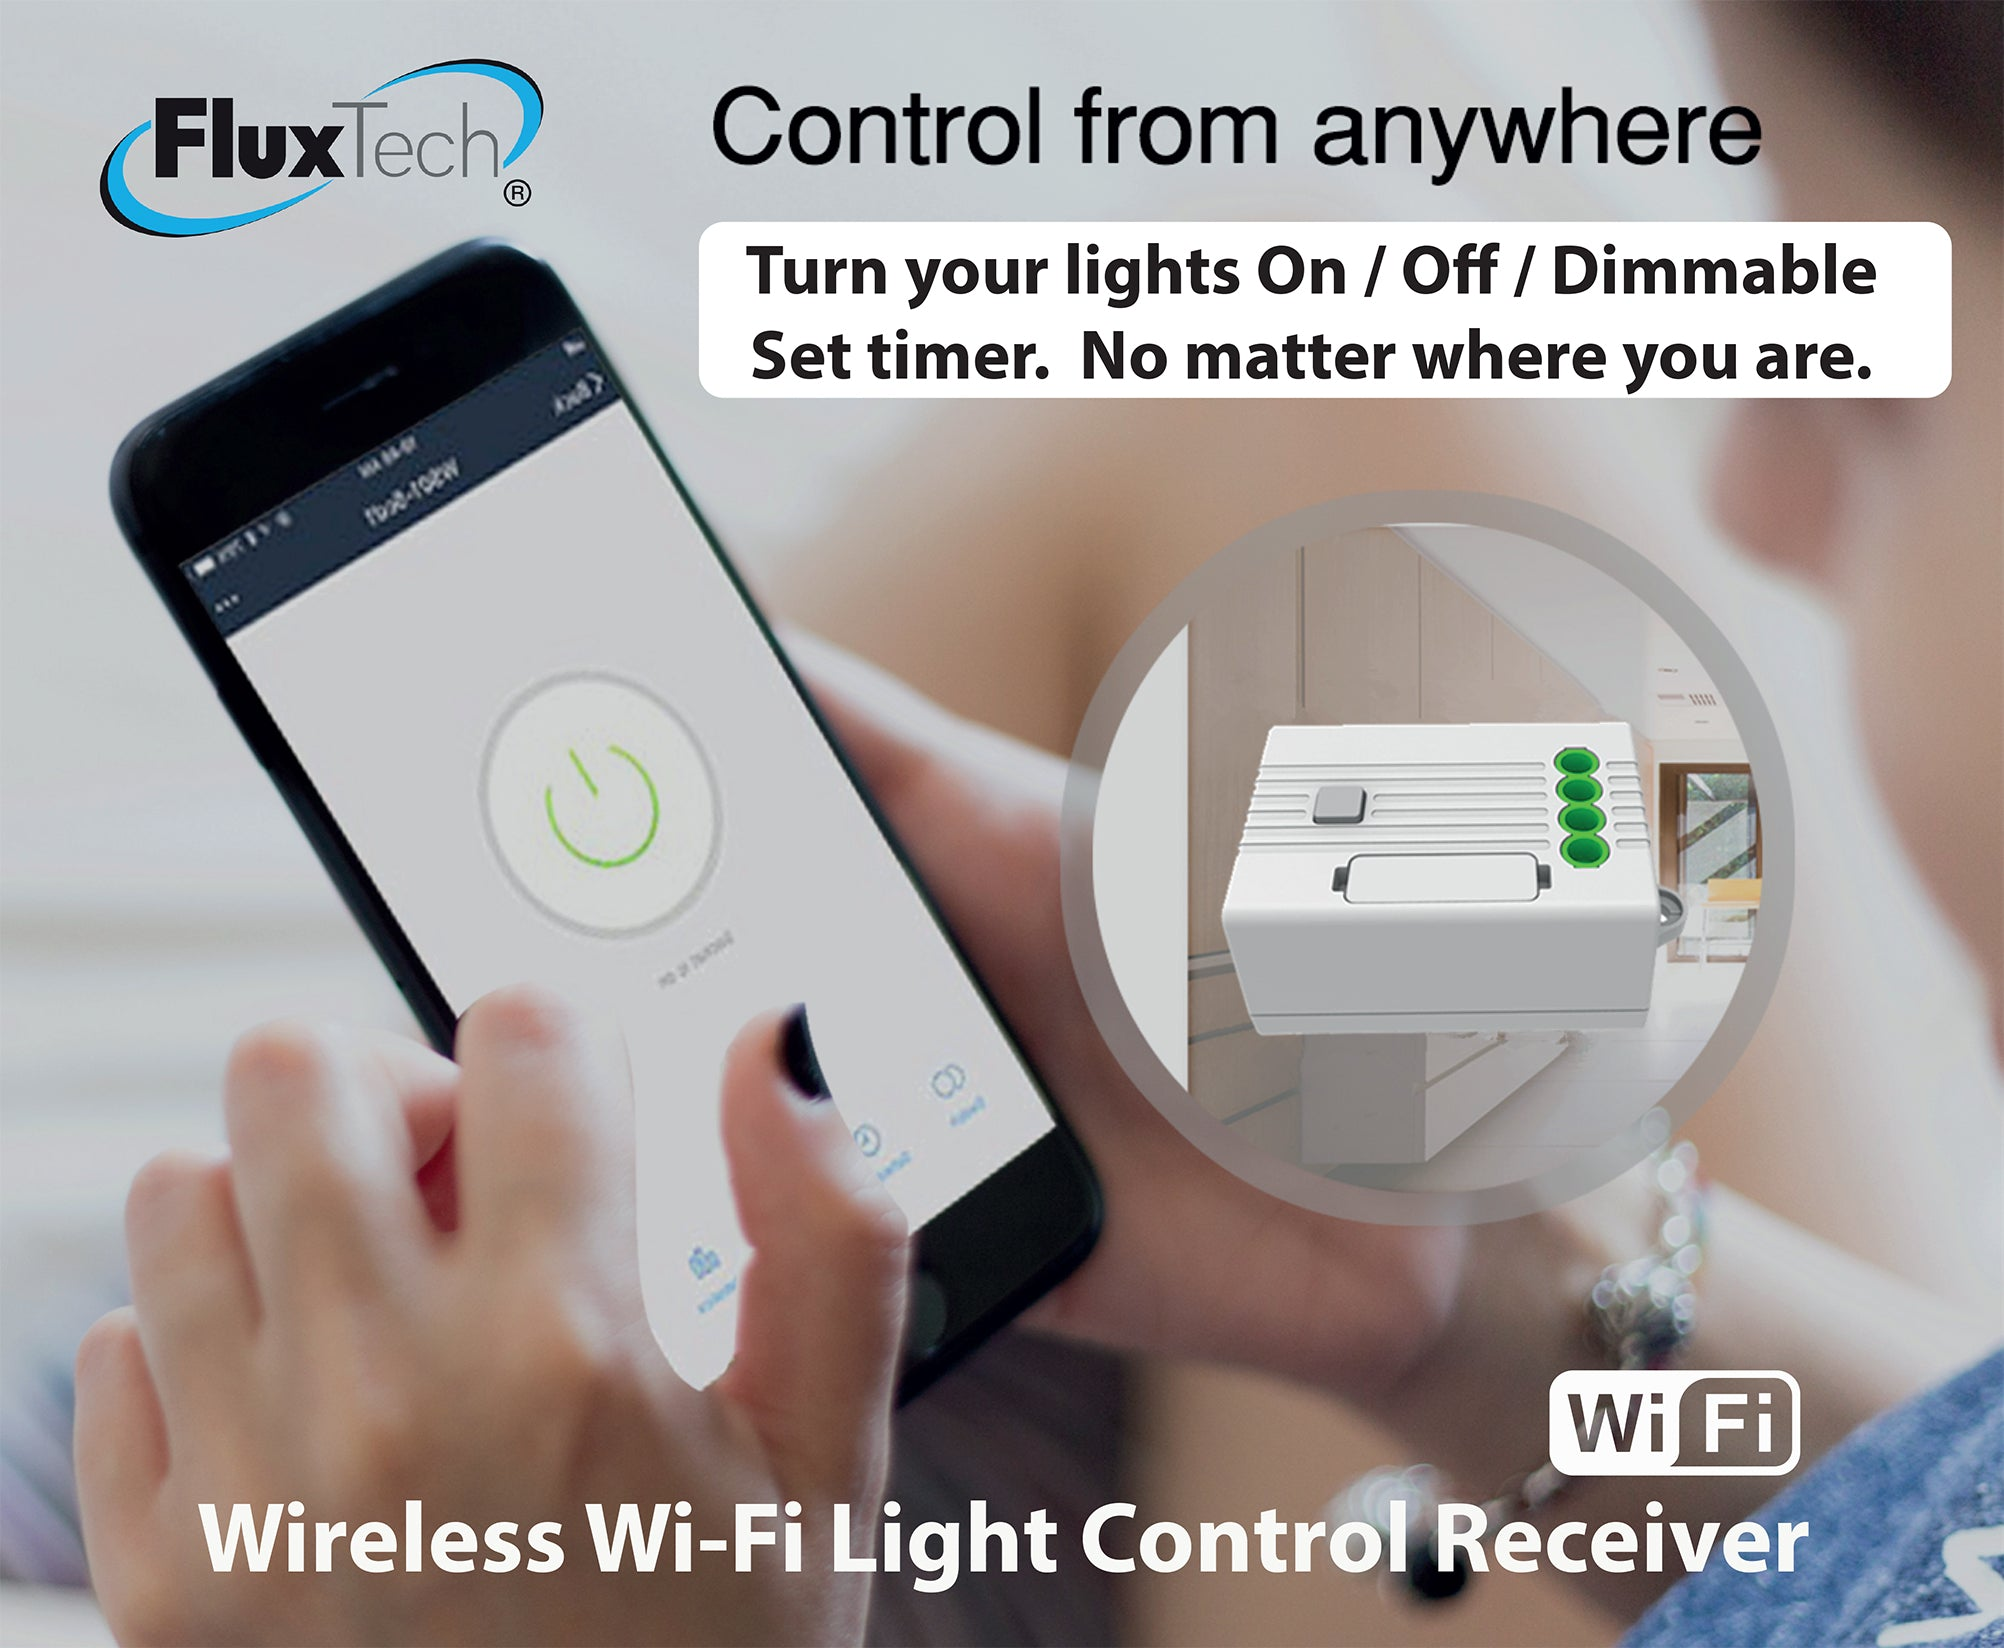 FluxTech - Wireless Wi-Fi Light Control Receiver